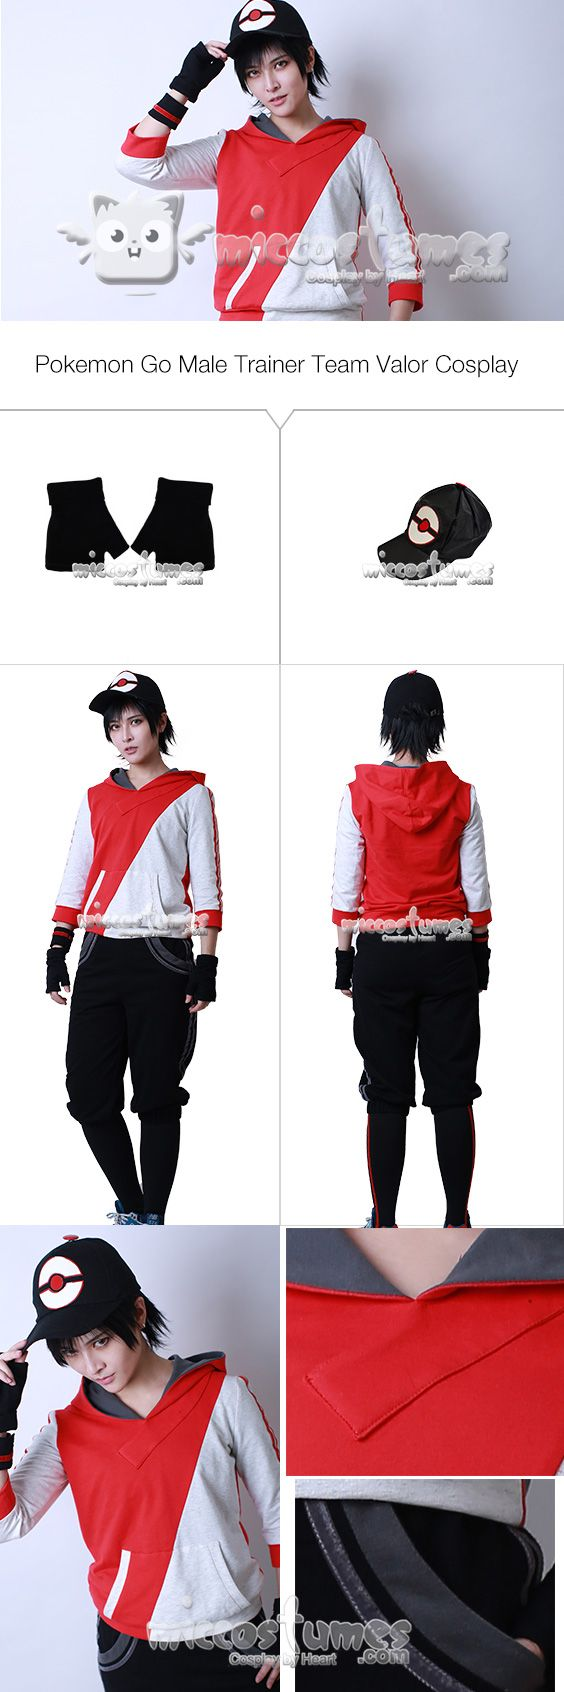 More details of Pokemon Go Male Trainer Team Valor Cosplay Costume sells at  #miccostumes #cosplay #pokémongo #teamvalor #Cosplaycostumes